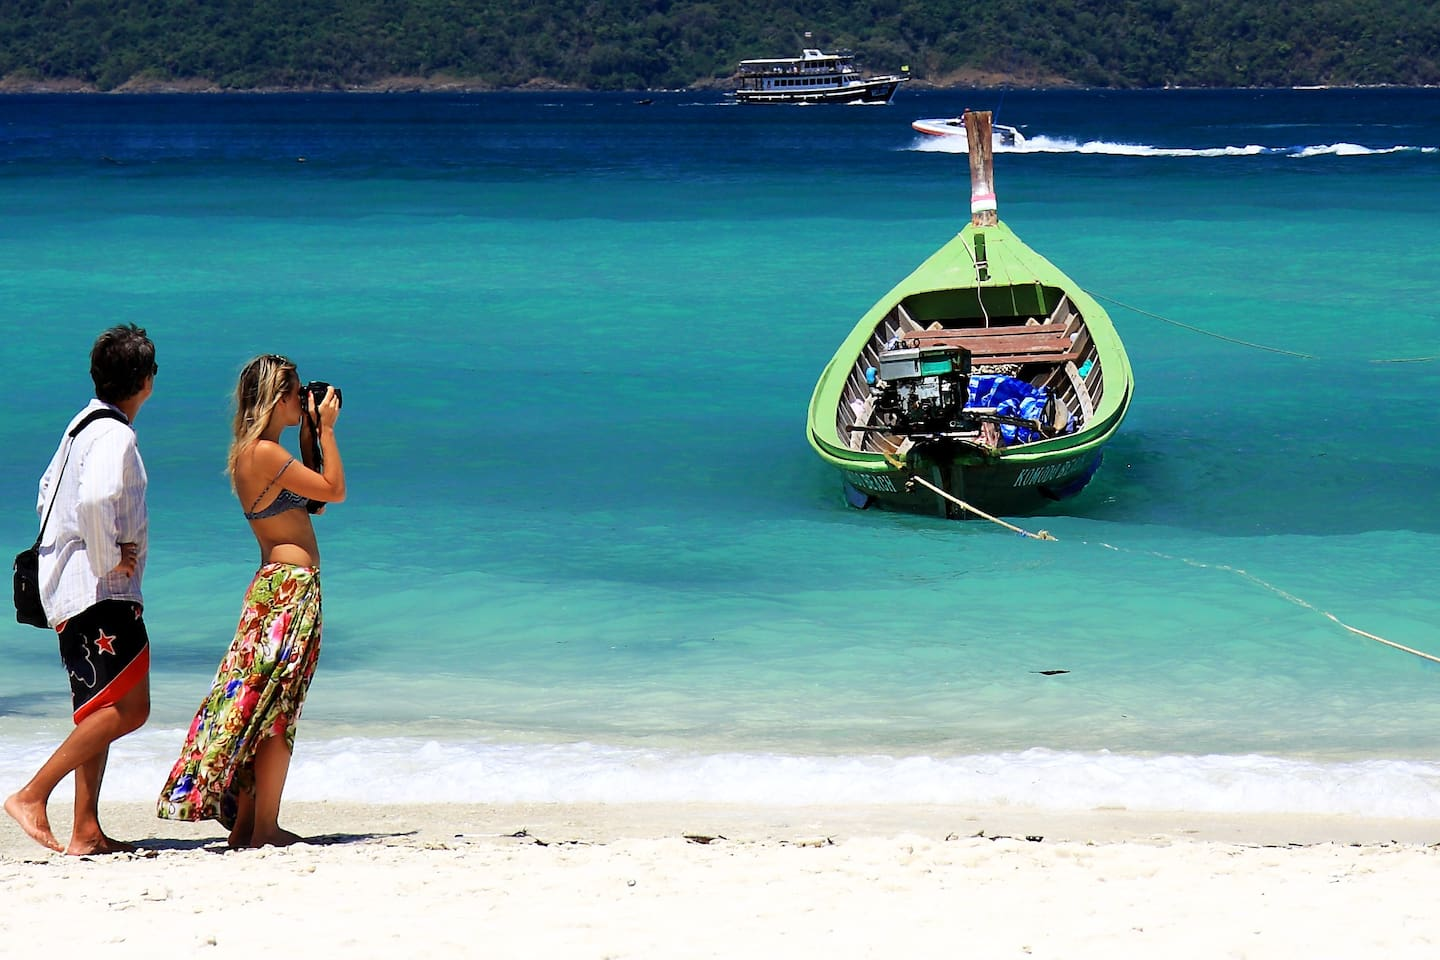 Island hopping to the nearby beaches is an exciting and fun experience.